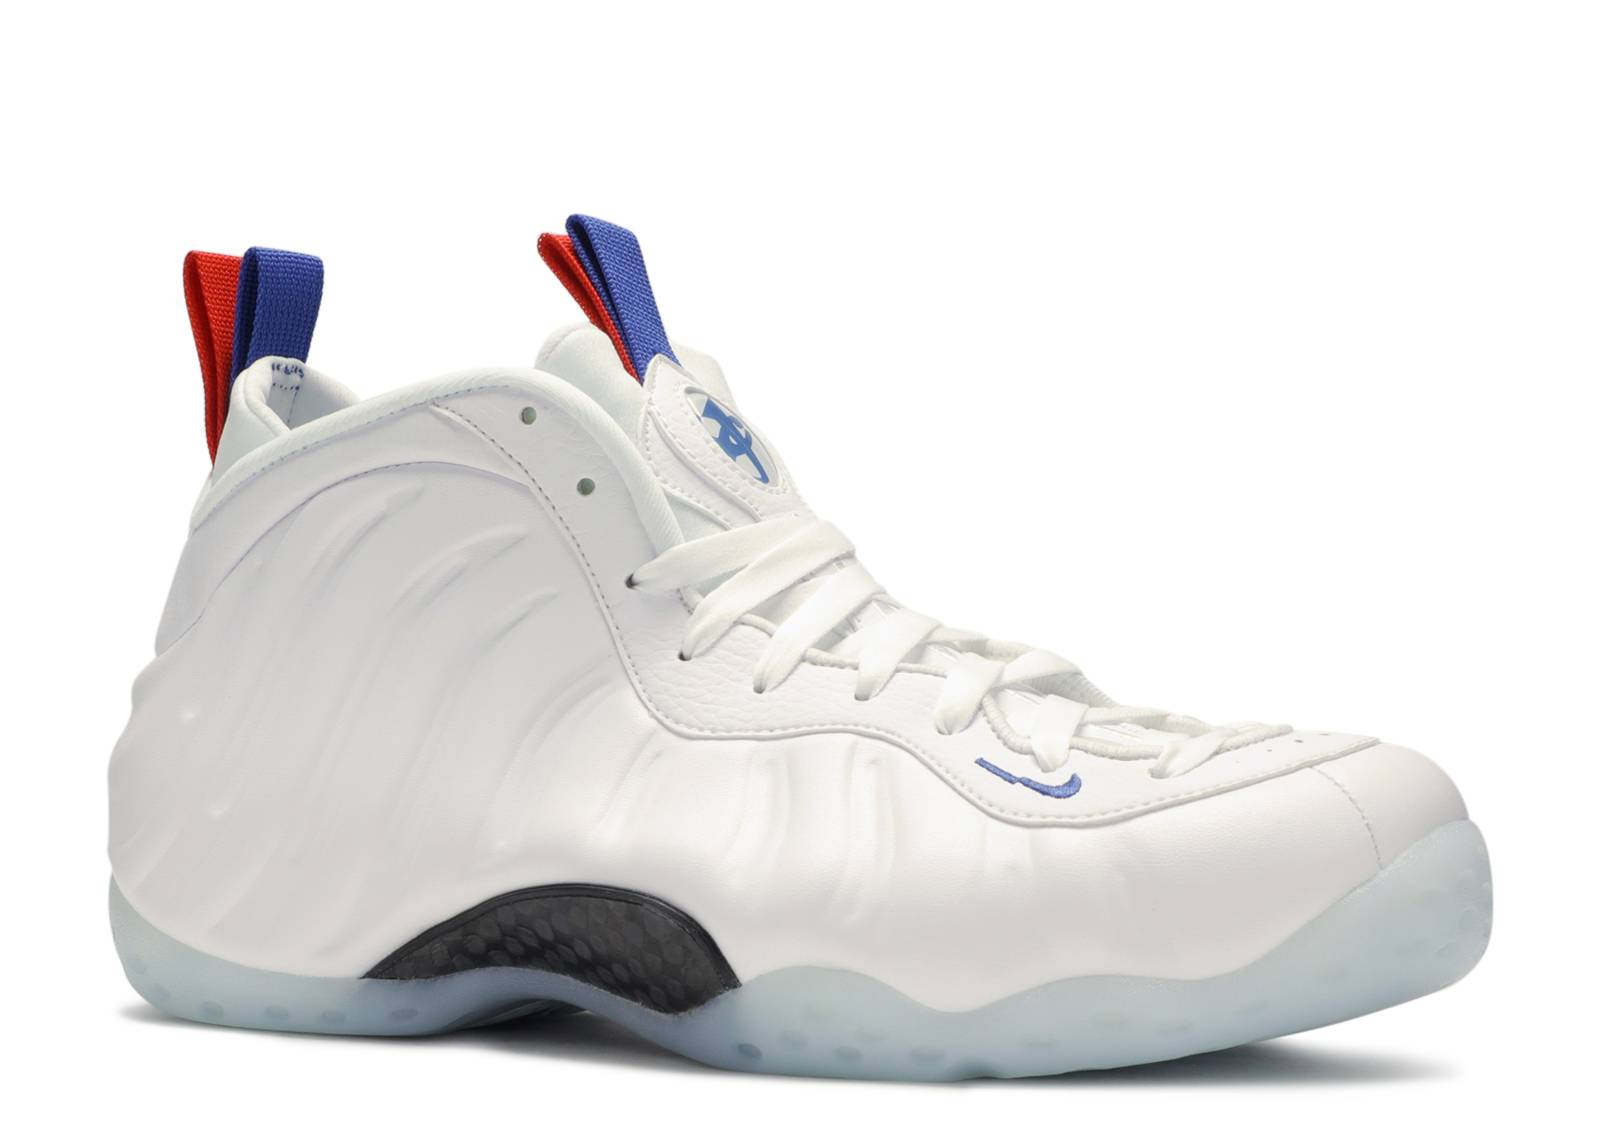 CLEAN MEN S NIKE AIR FOAMPOSITE ONE PRM BLUE ...